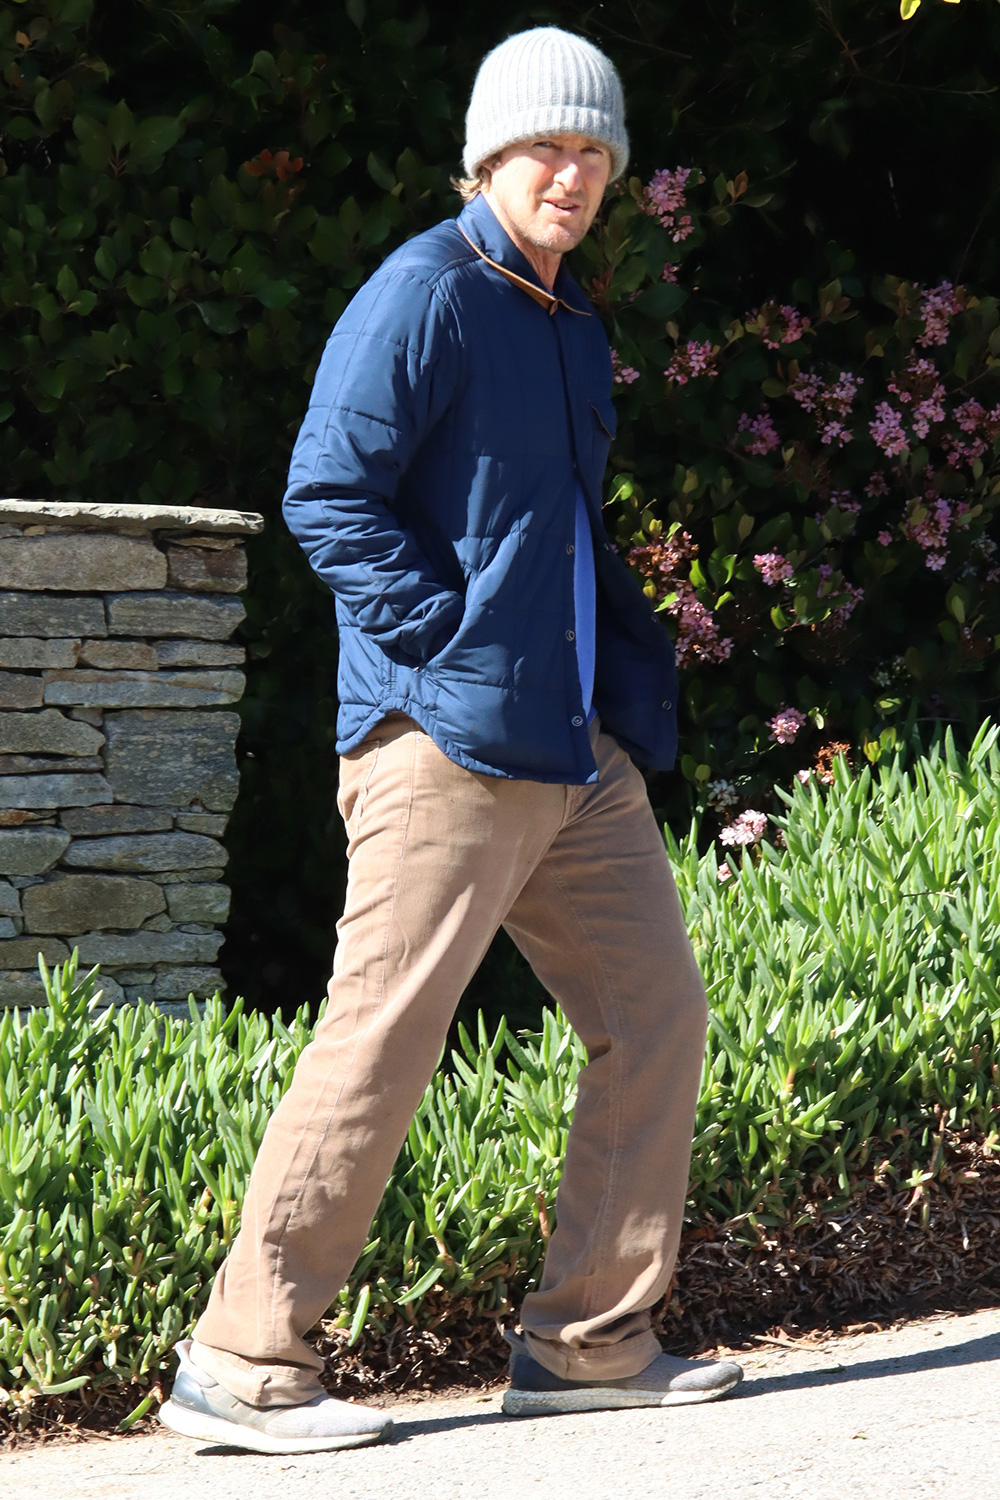 Owen Wilson seen with his labrador pup on walk during lockdown